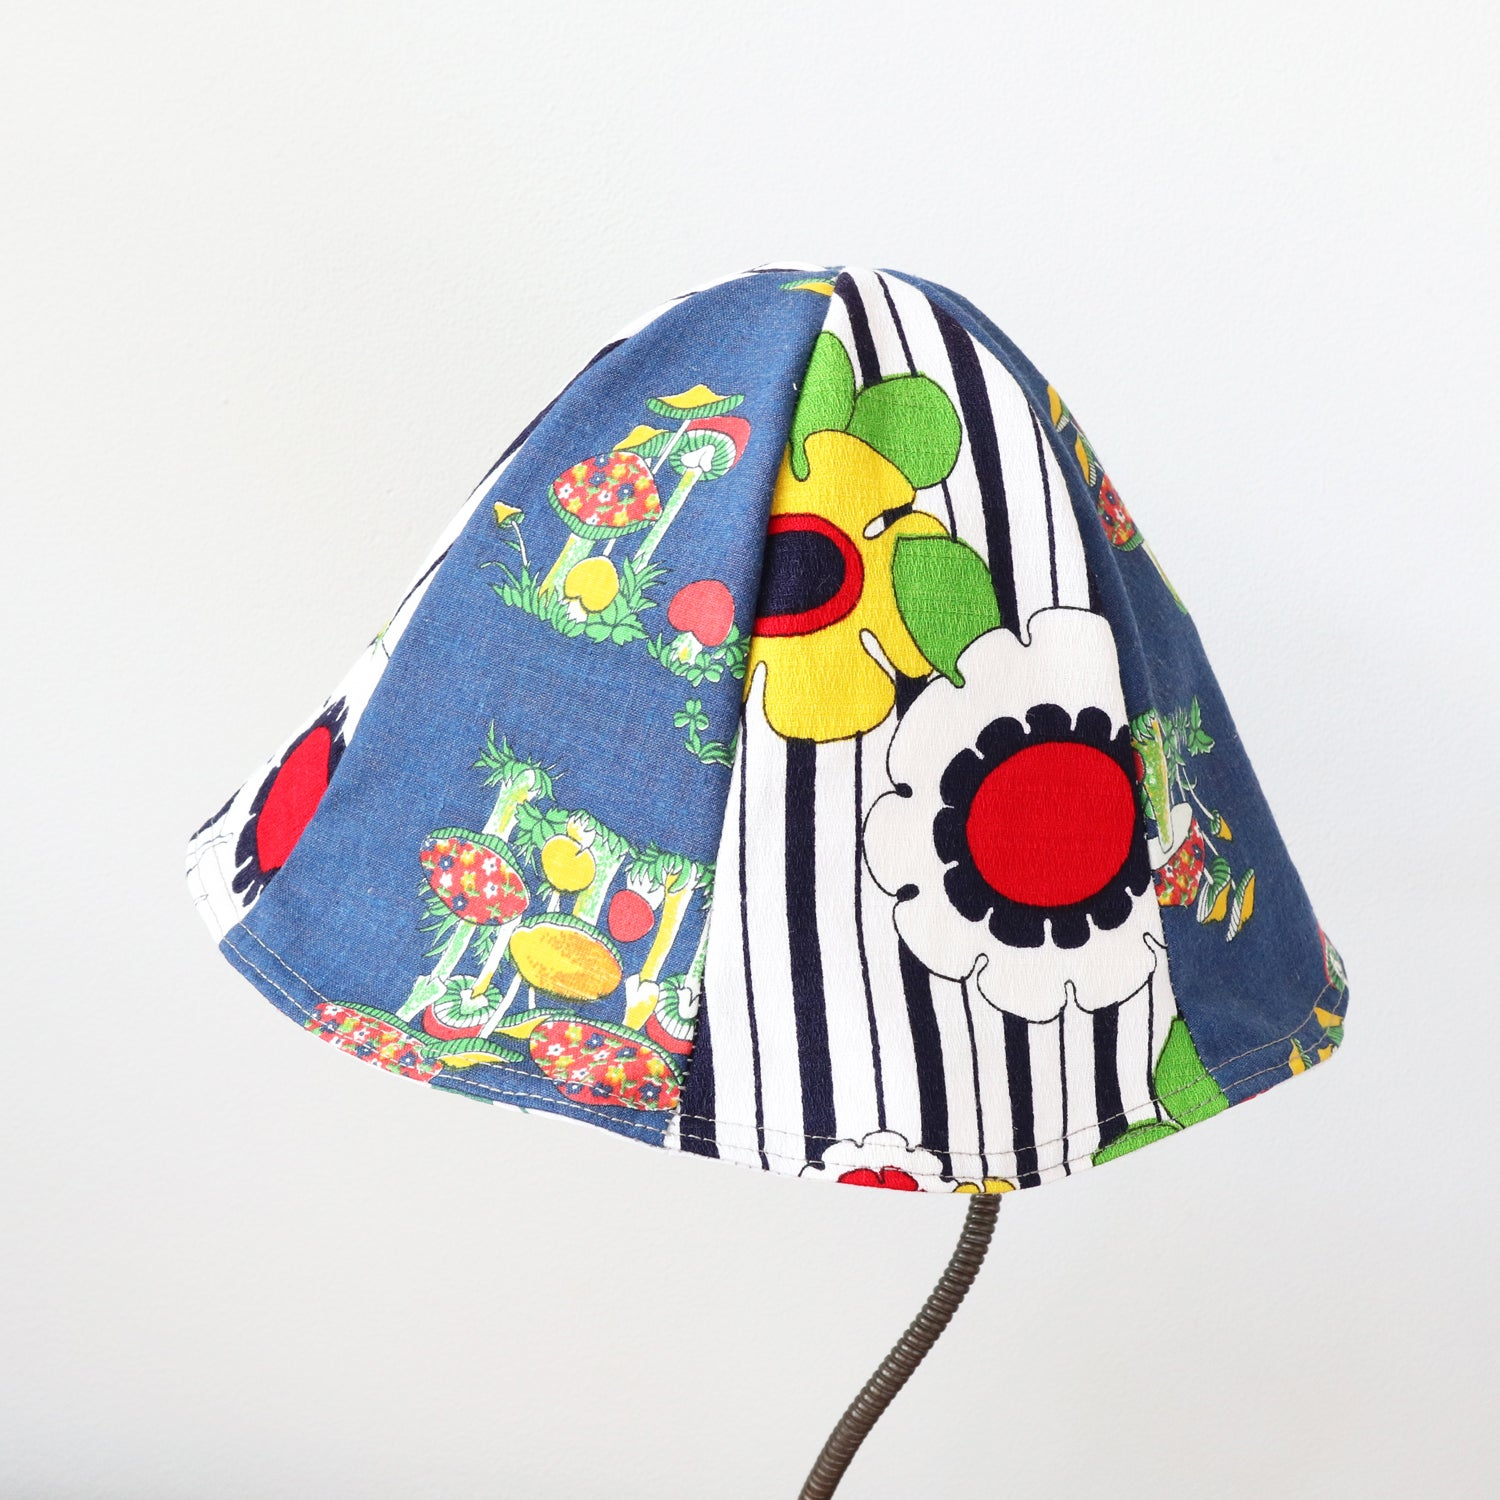 Image of shrooms floral mushrooms  tween teen adult vintage fabric six panel bucket hat buckethat sunhat